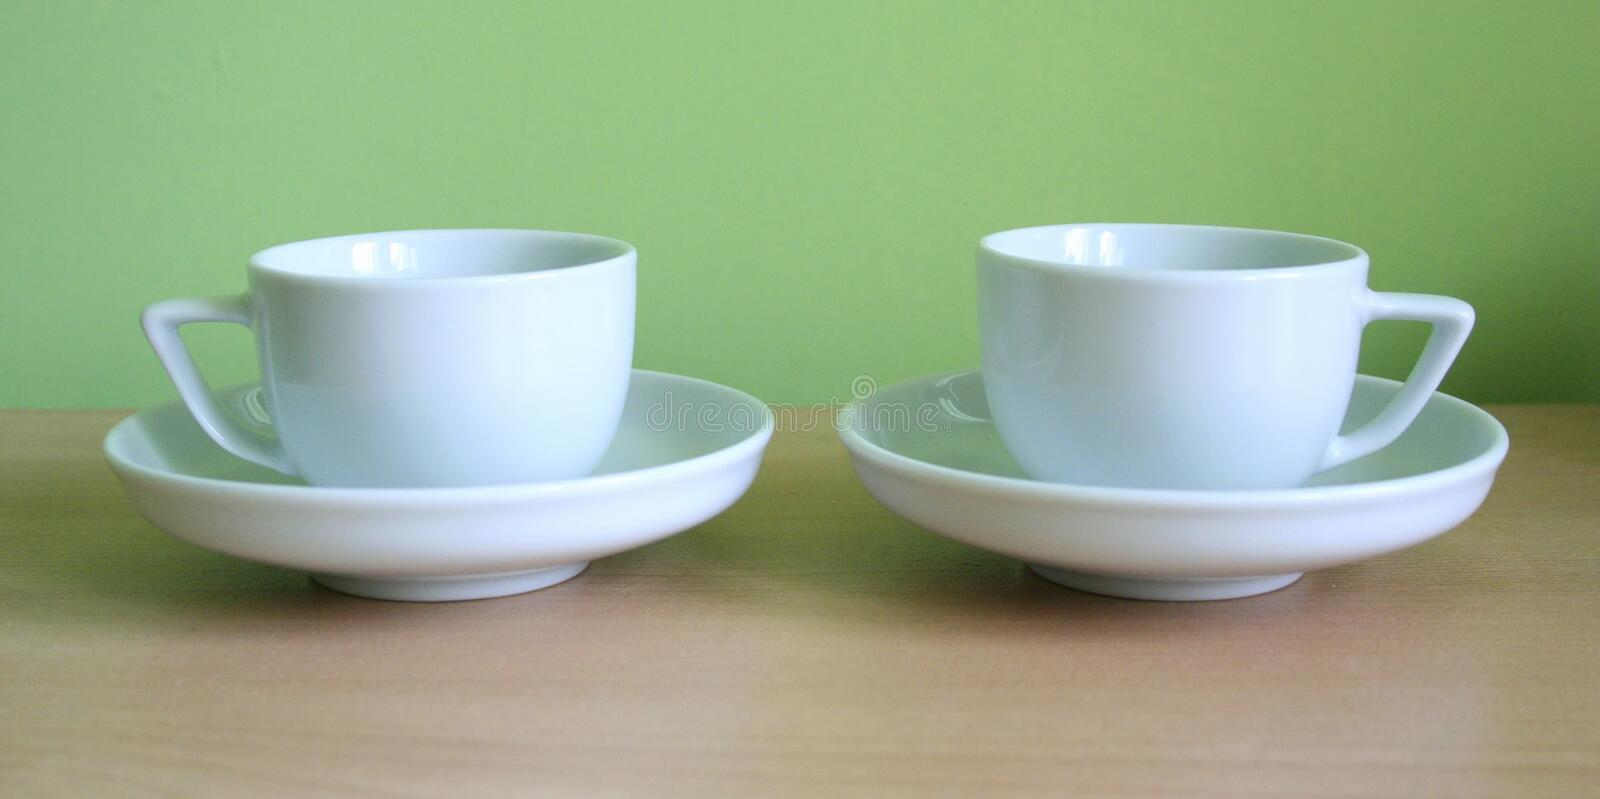 Coffe-sup 3. royalty free stock photo